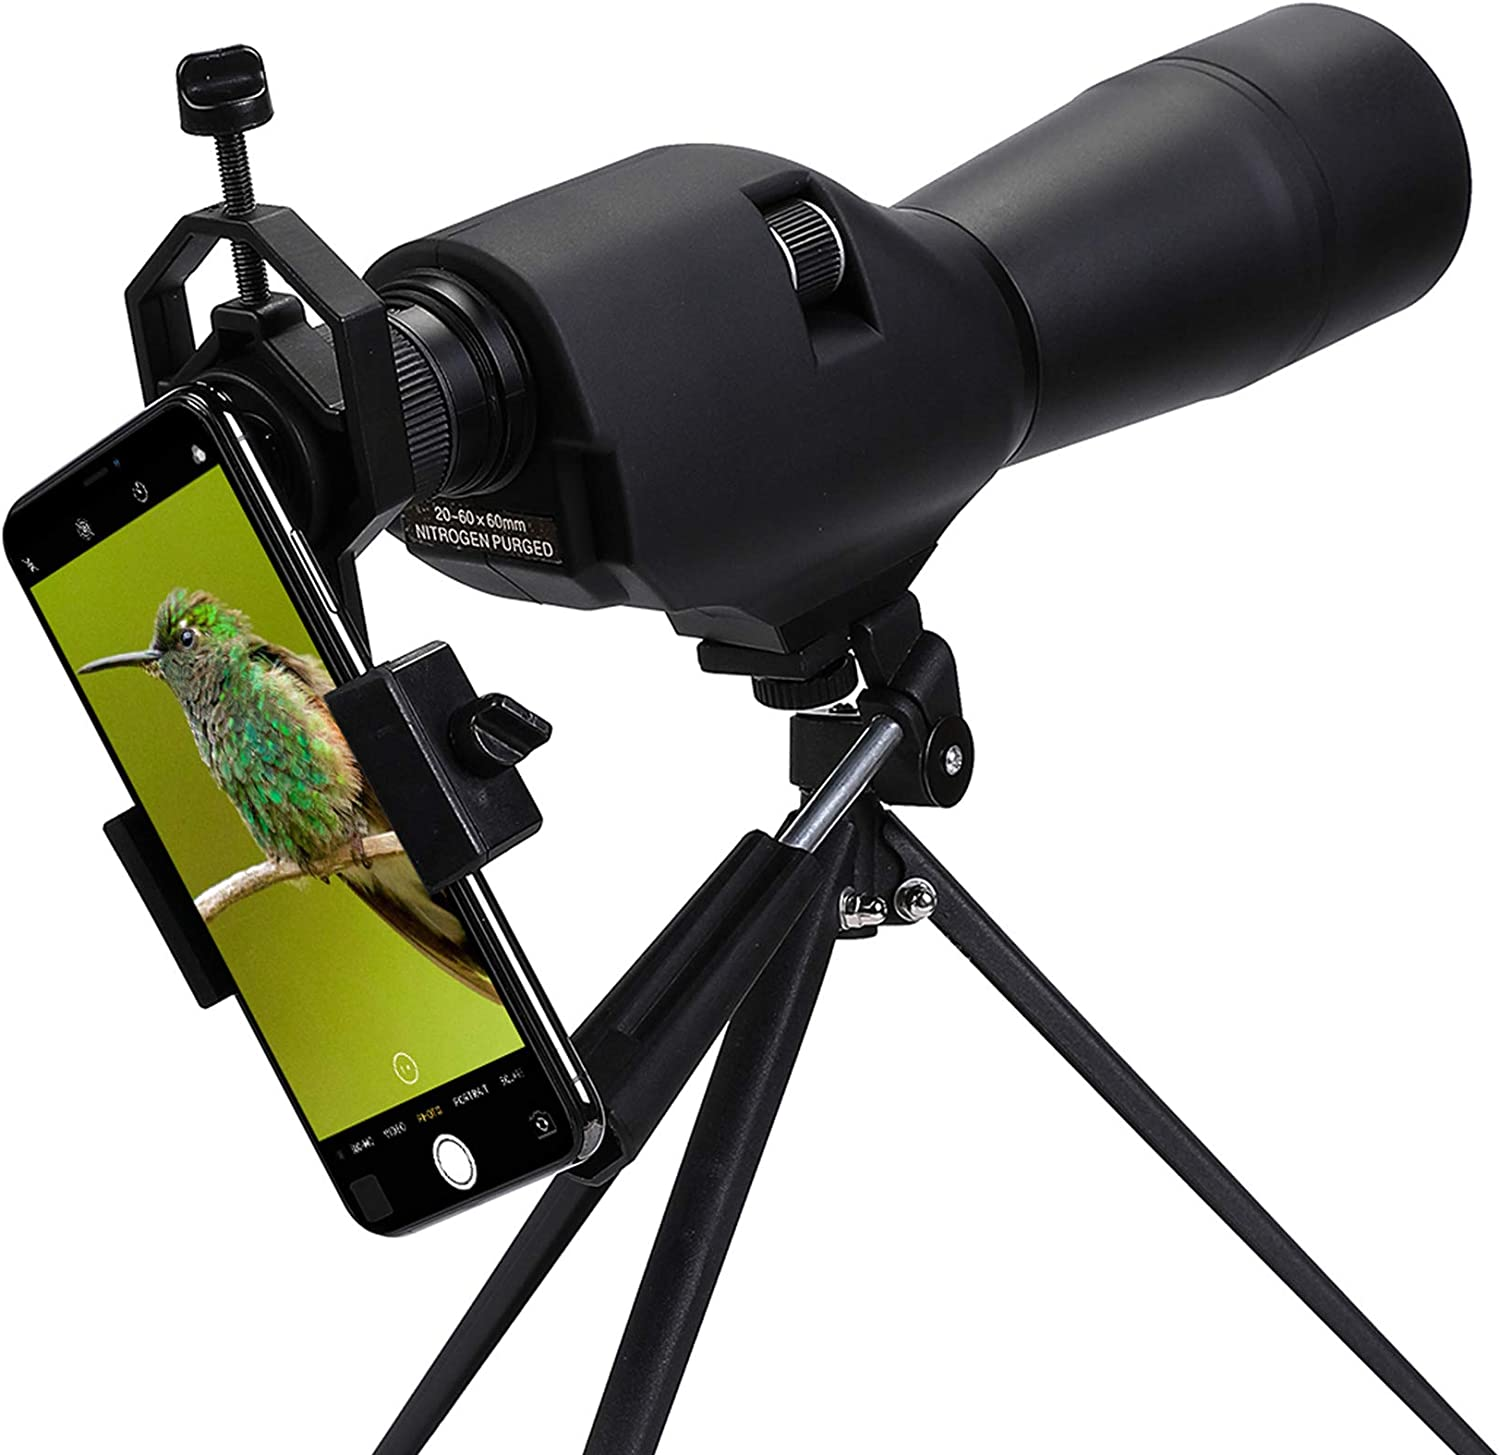 Pinty 20-60x60 Waterproof Straight Spotting Scope with Tripod, Optics Zoom 36-19m/1000m for Target Shooting Bird Watching Hunting W/Phone Holder